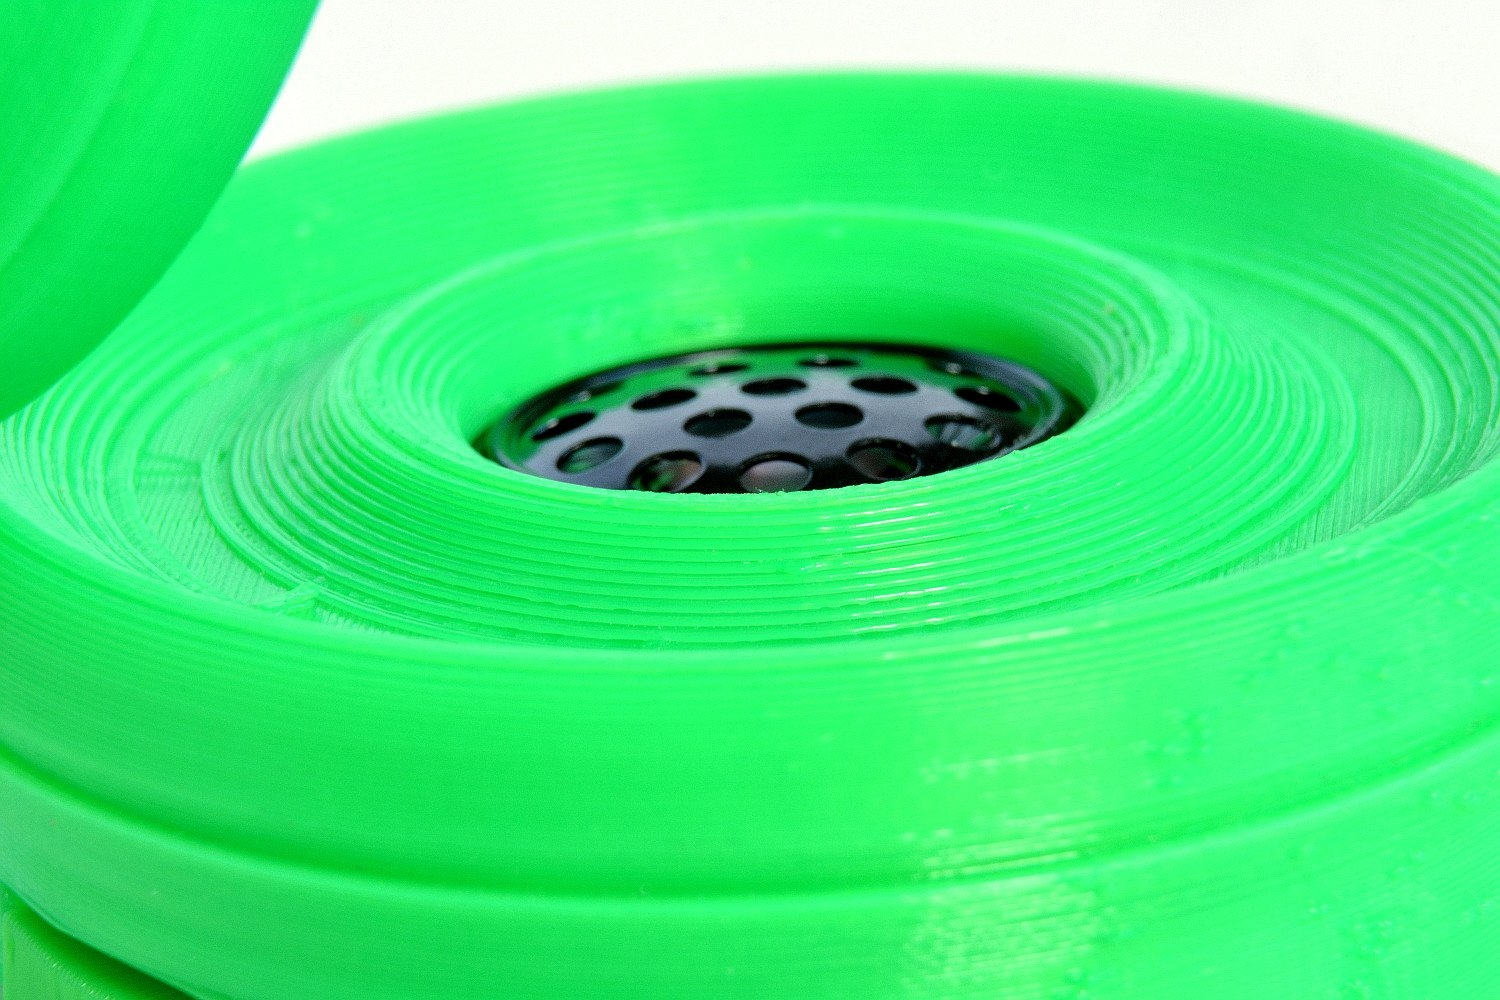 Fillamentum Flexfill 98A  Luminous green TPU 2.85 mm